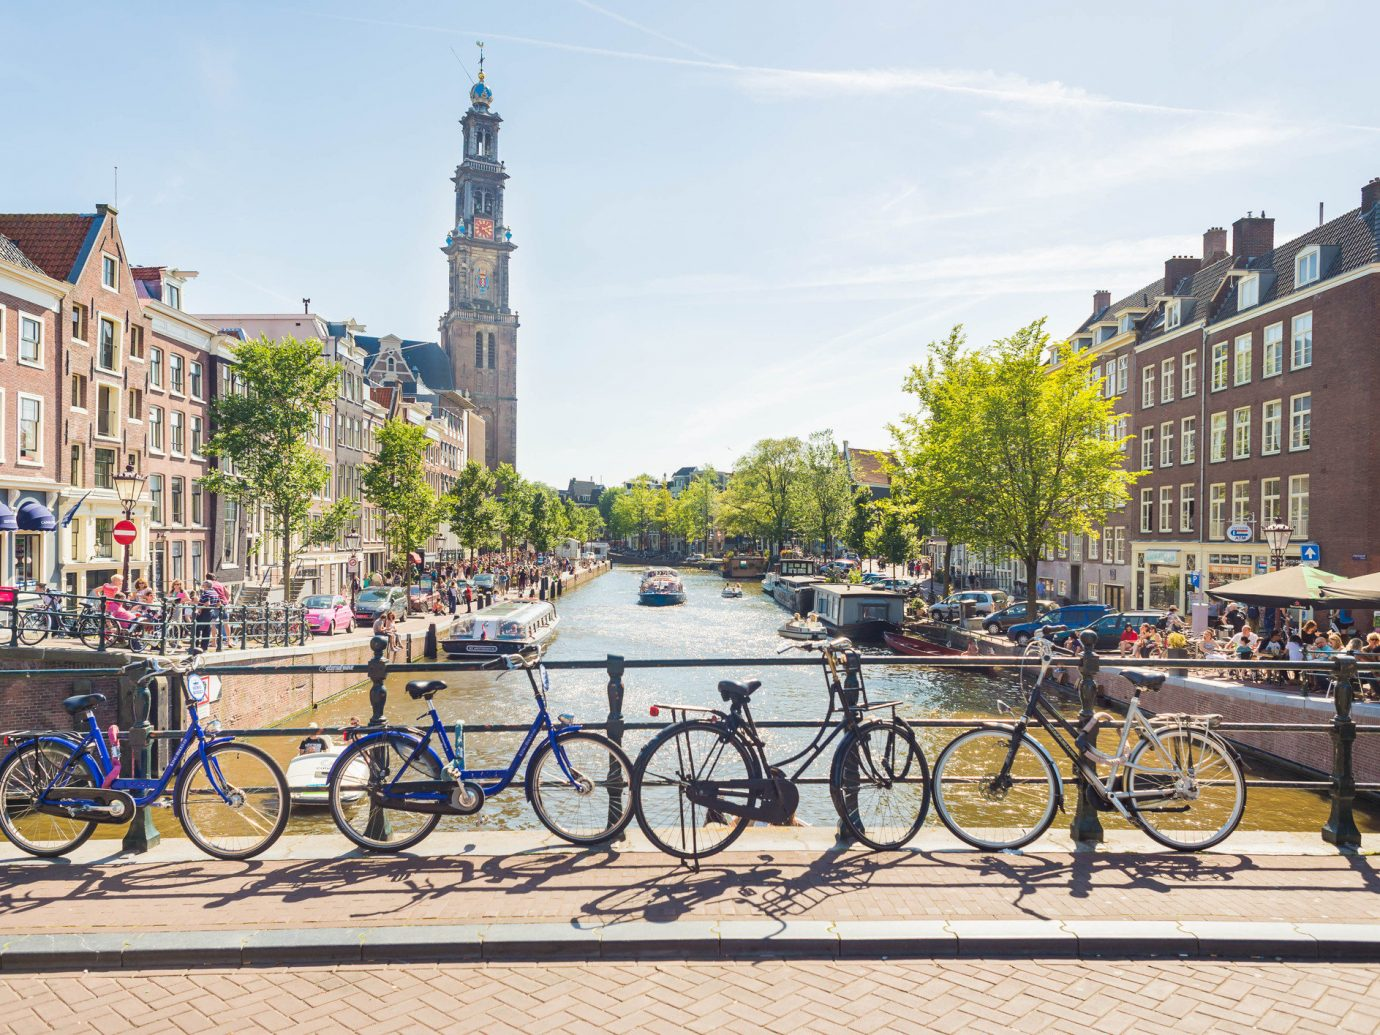 Lakes + Rivers Landmarks Travel Tips outdoor sky bicycle building waterway land vehicle body of water Town Canal lane City road bicycle urban area water cycling tree street parked metropolitan area Downtown recreation vehicle plant River town square road channel tours